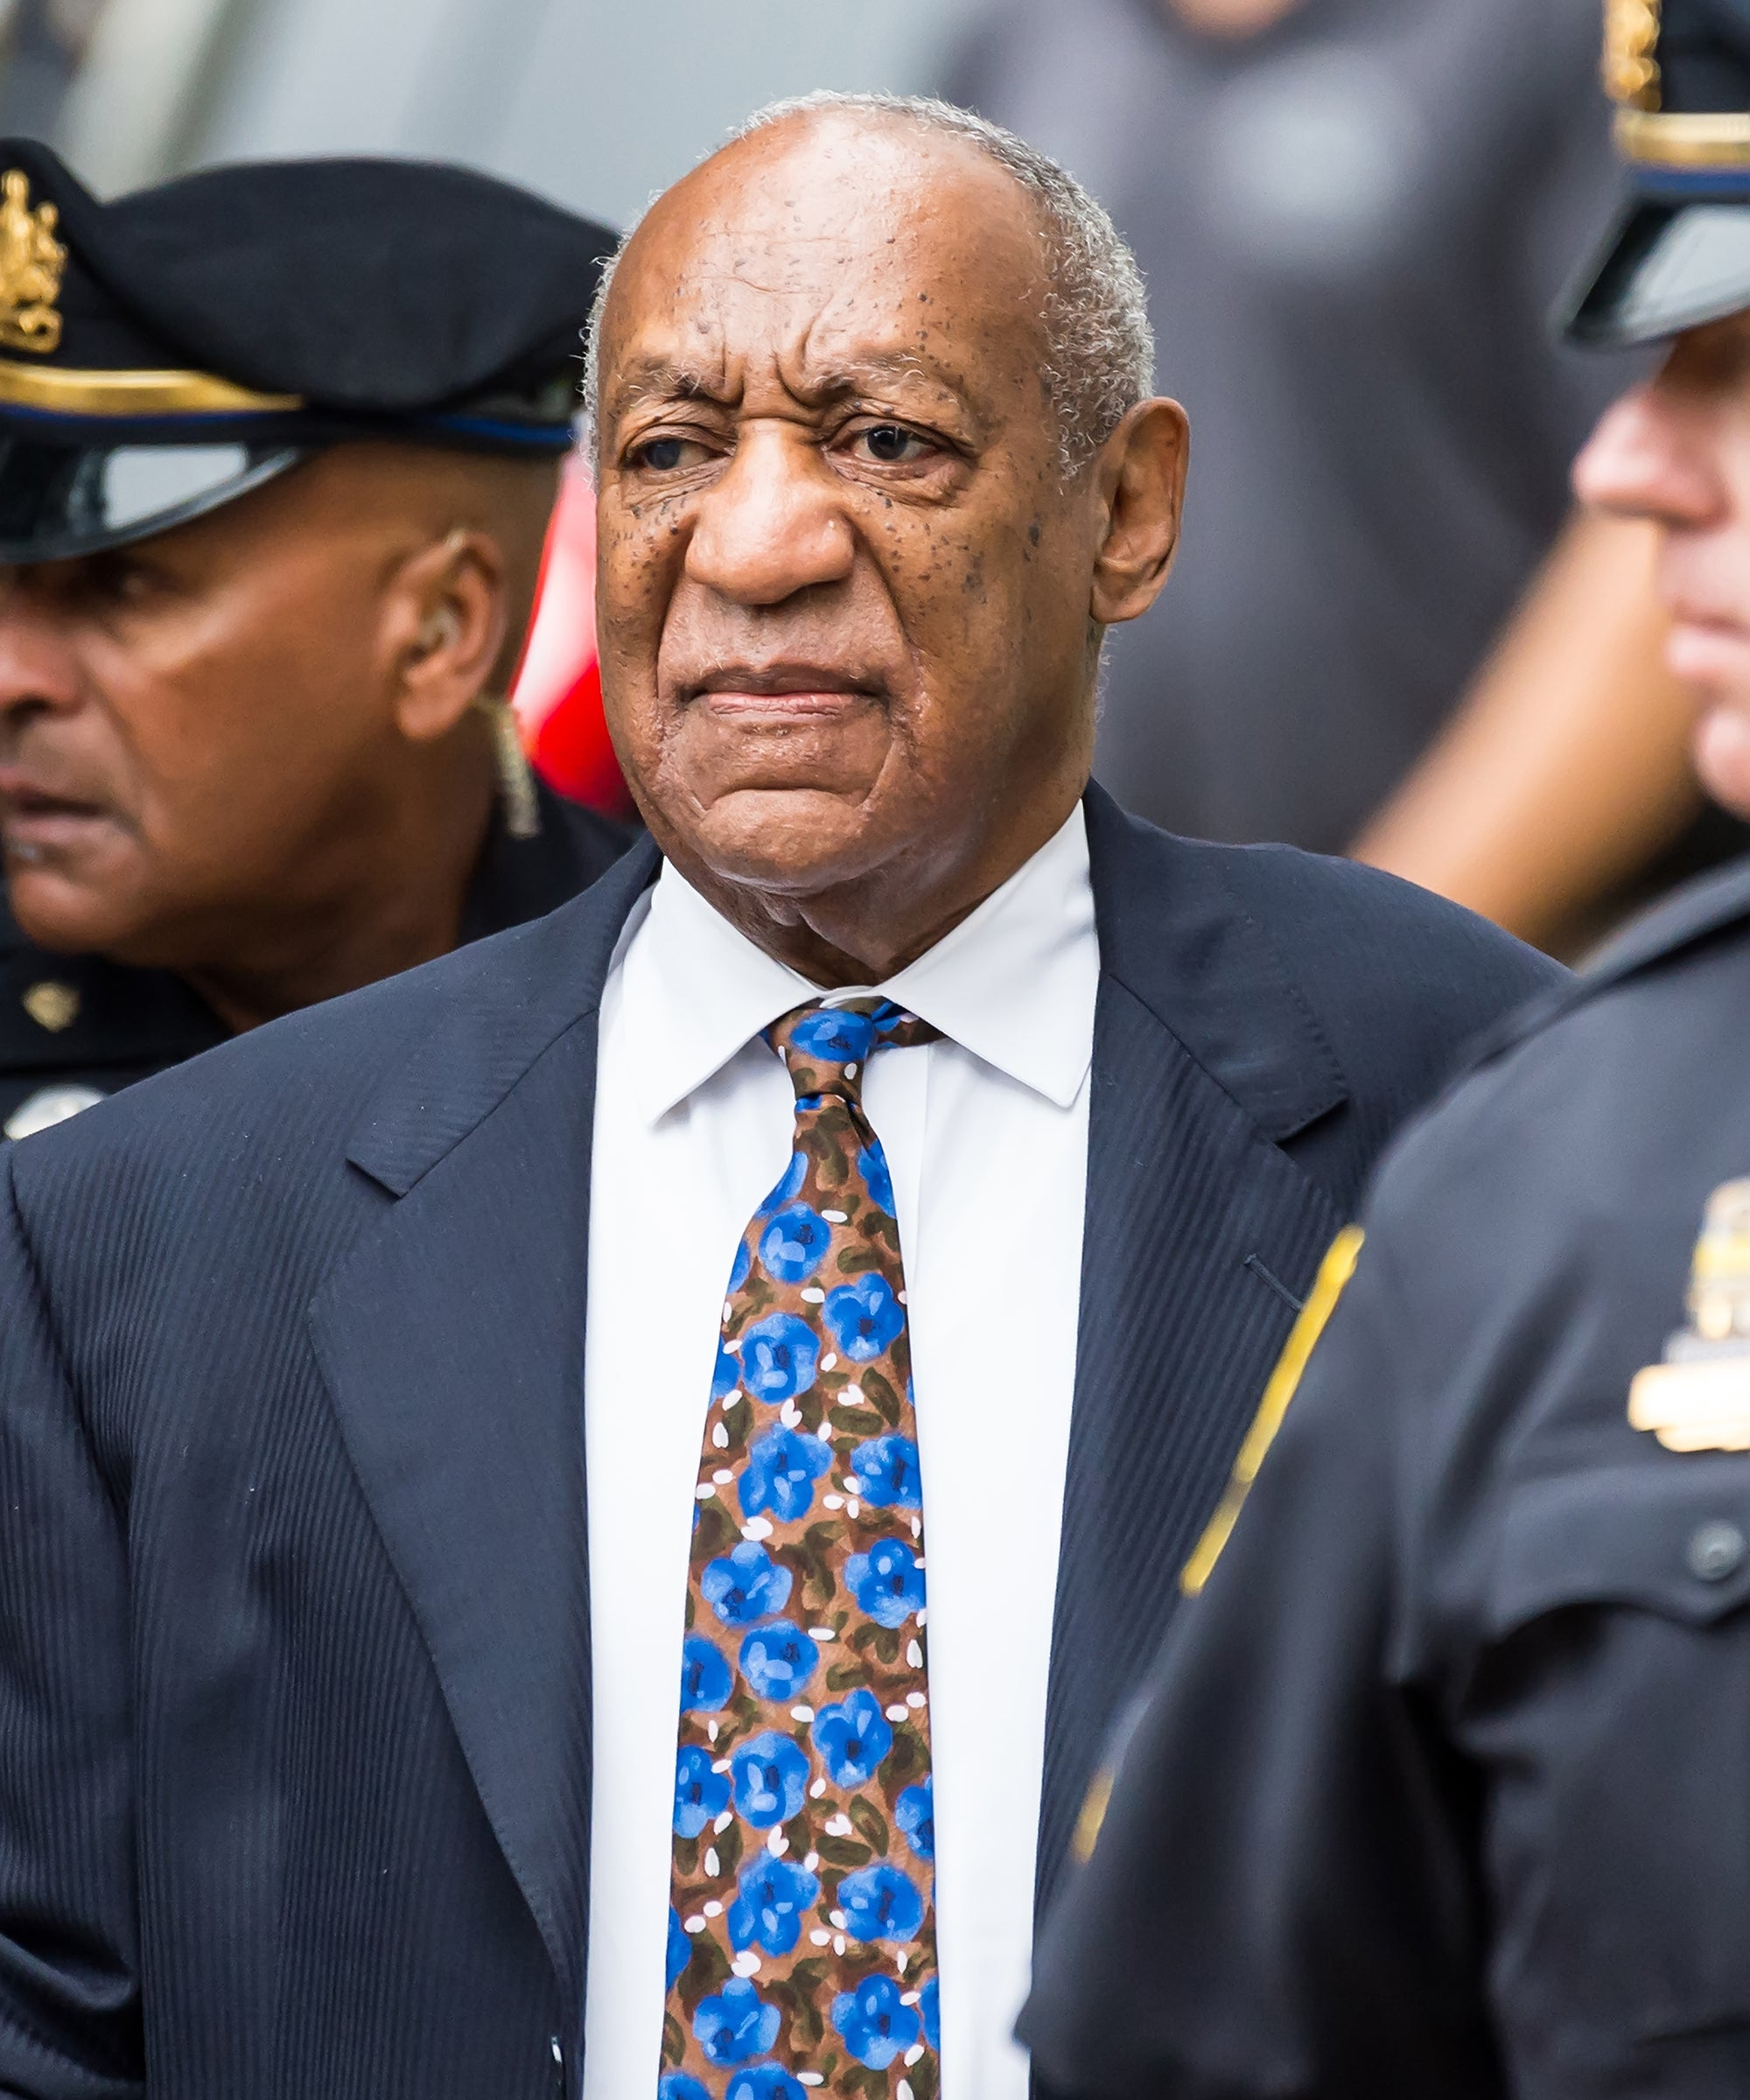 Bill Cosby Tried To Get Out Of His Jail Sentence, But The Court Sided With Survivors